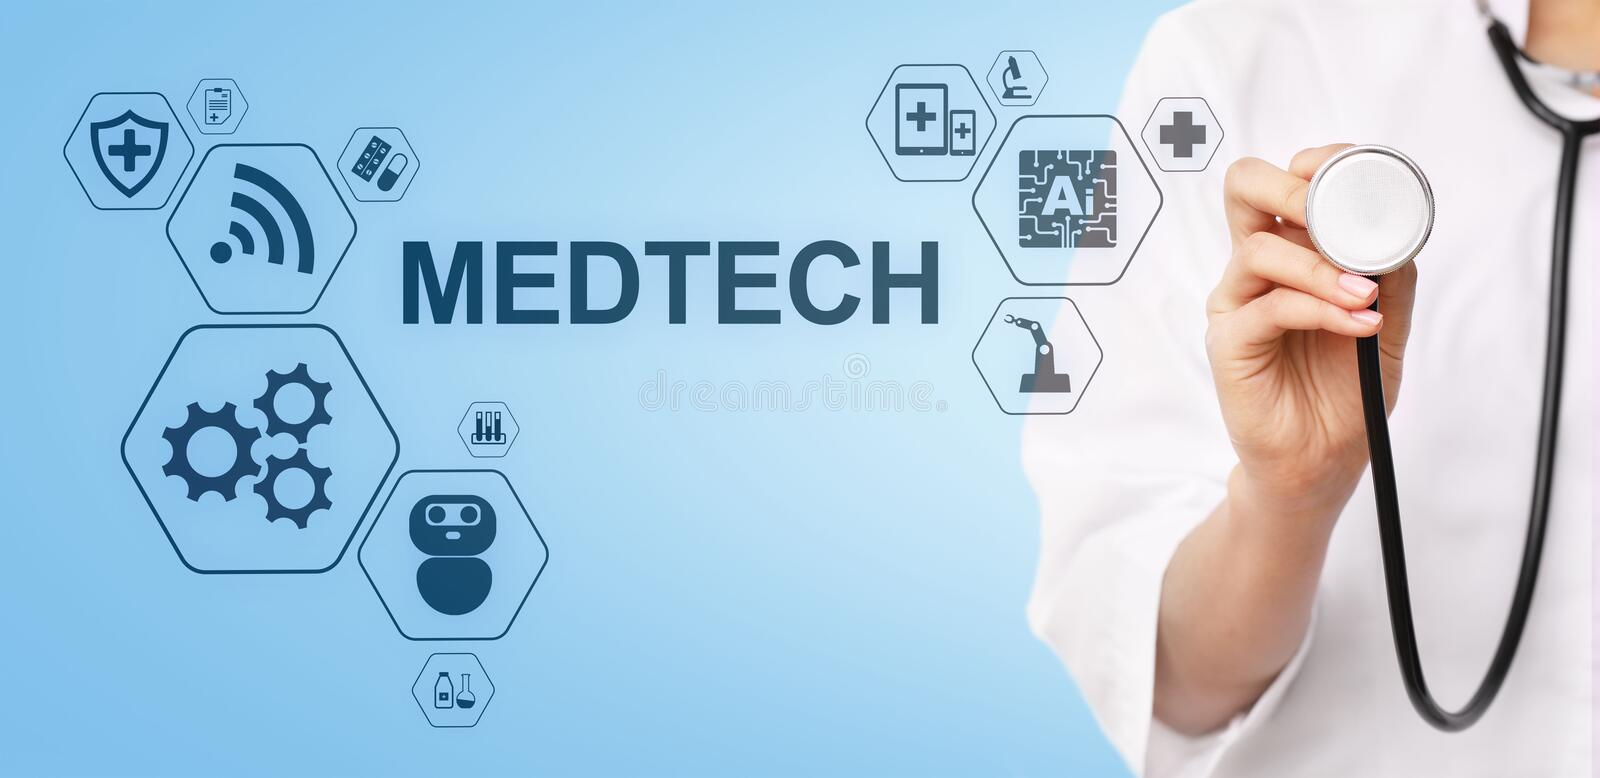 Medtech medical technology information integration internet big data concept on virtual screen. Doctor with stethoscope. stock image